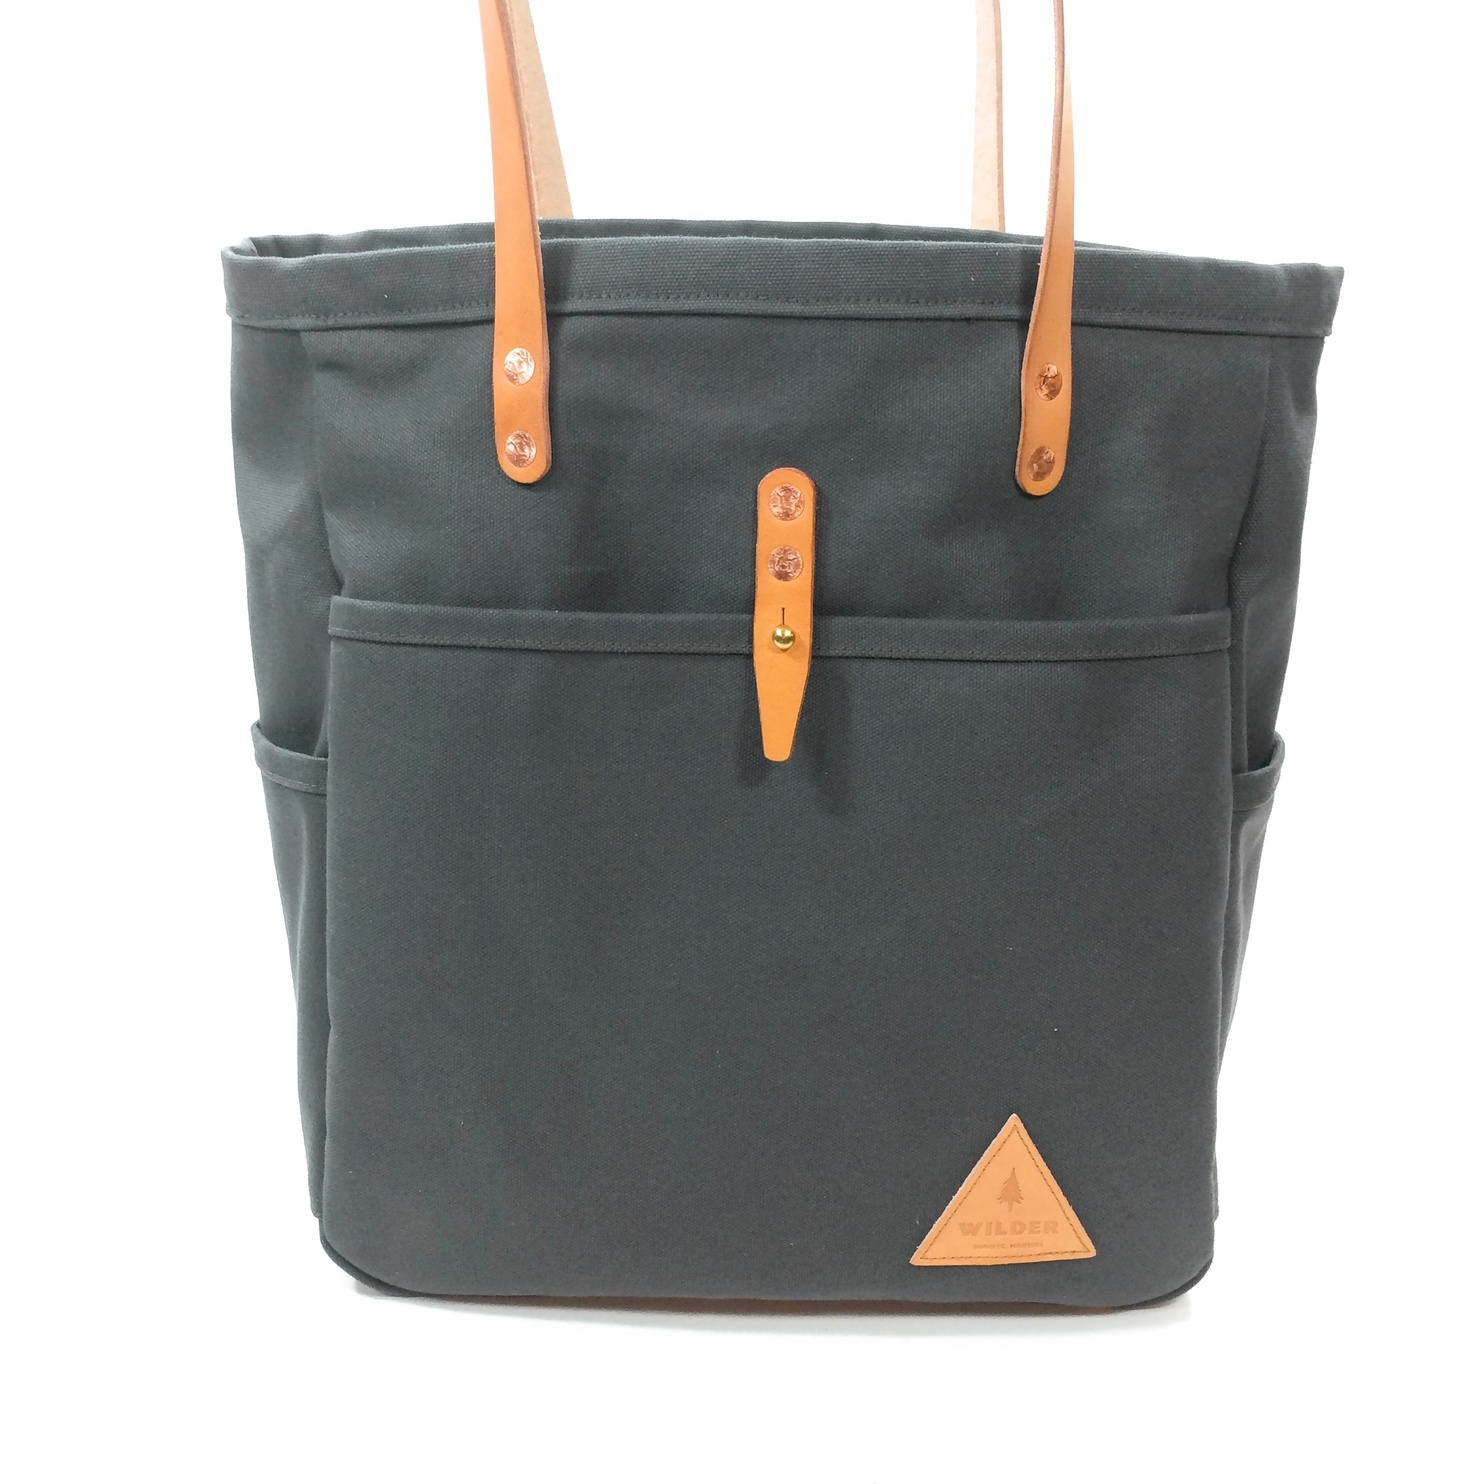 Five Pocket Tote